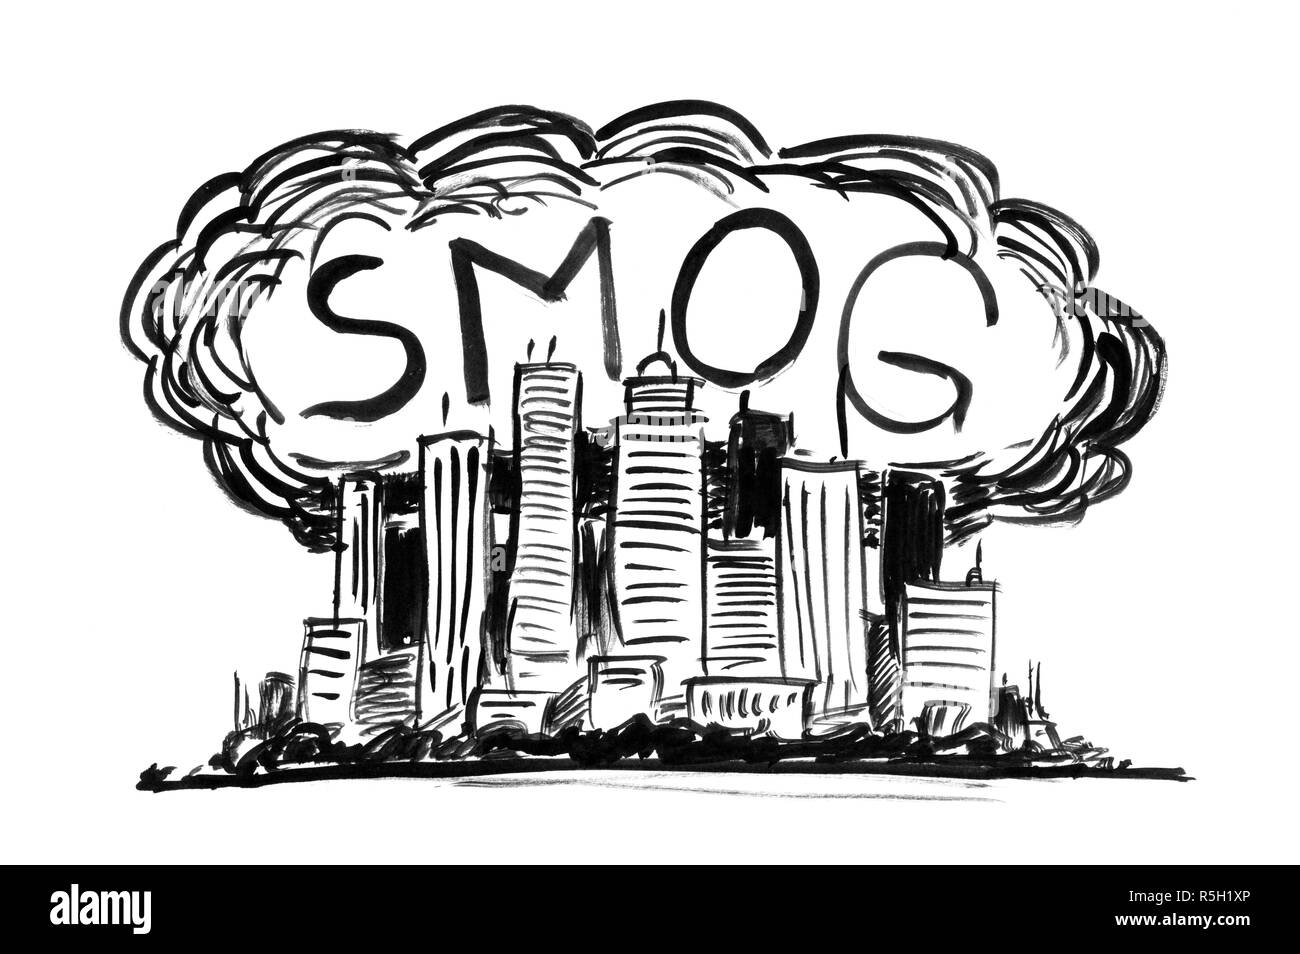 Black ink grunge hand drawing of city covered by smog and